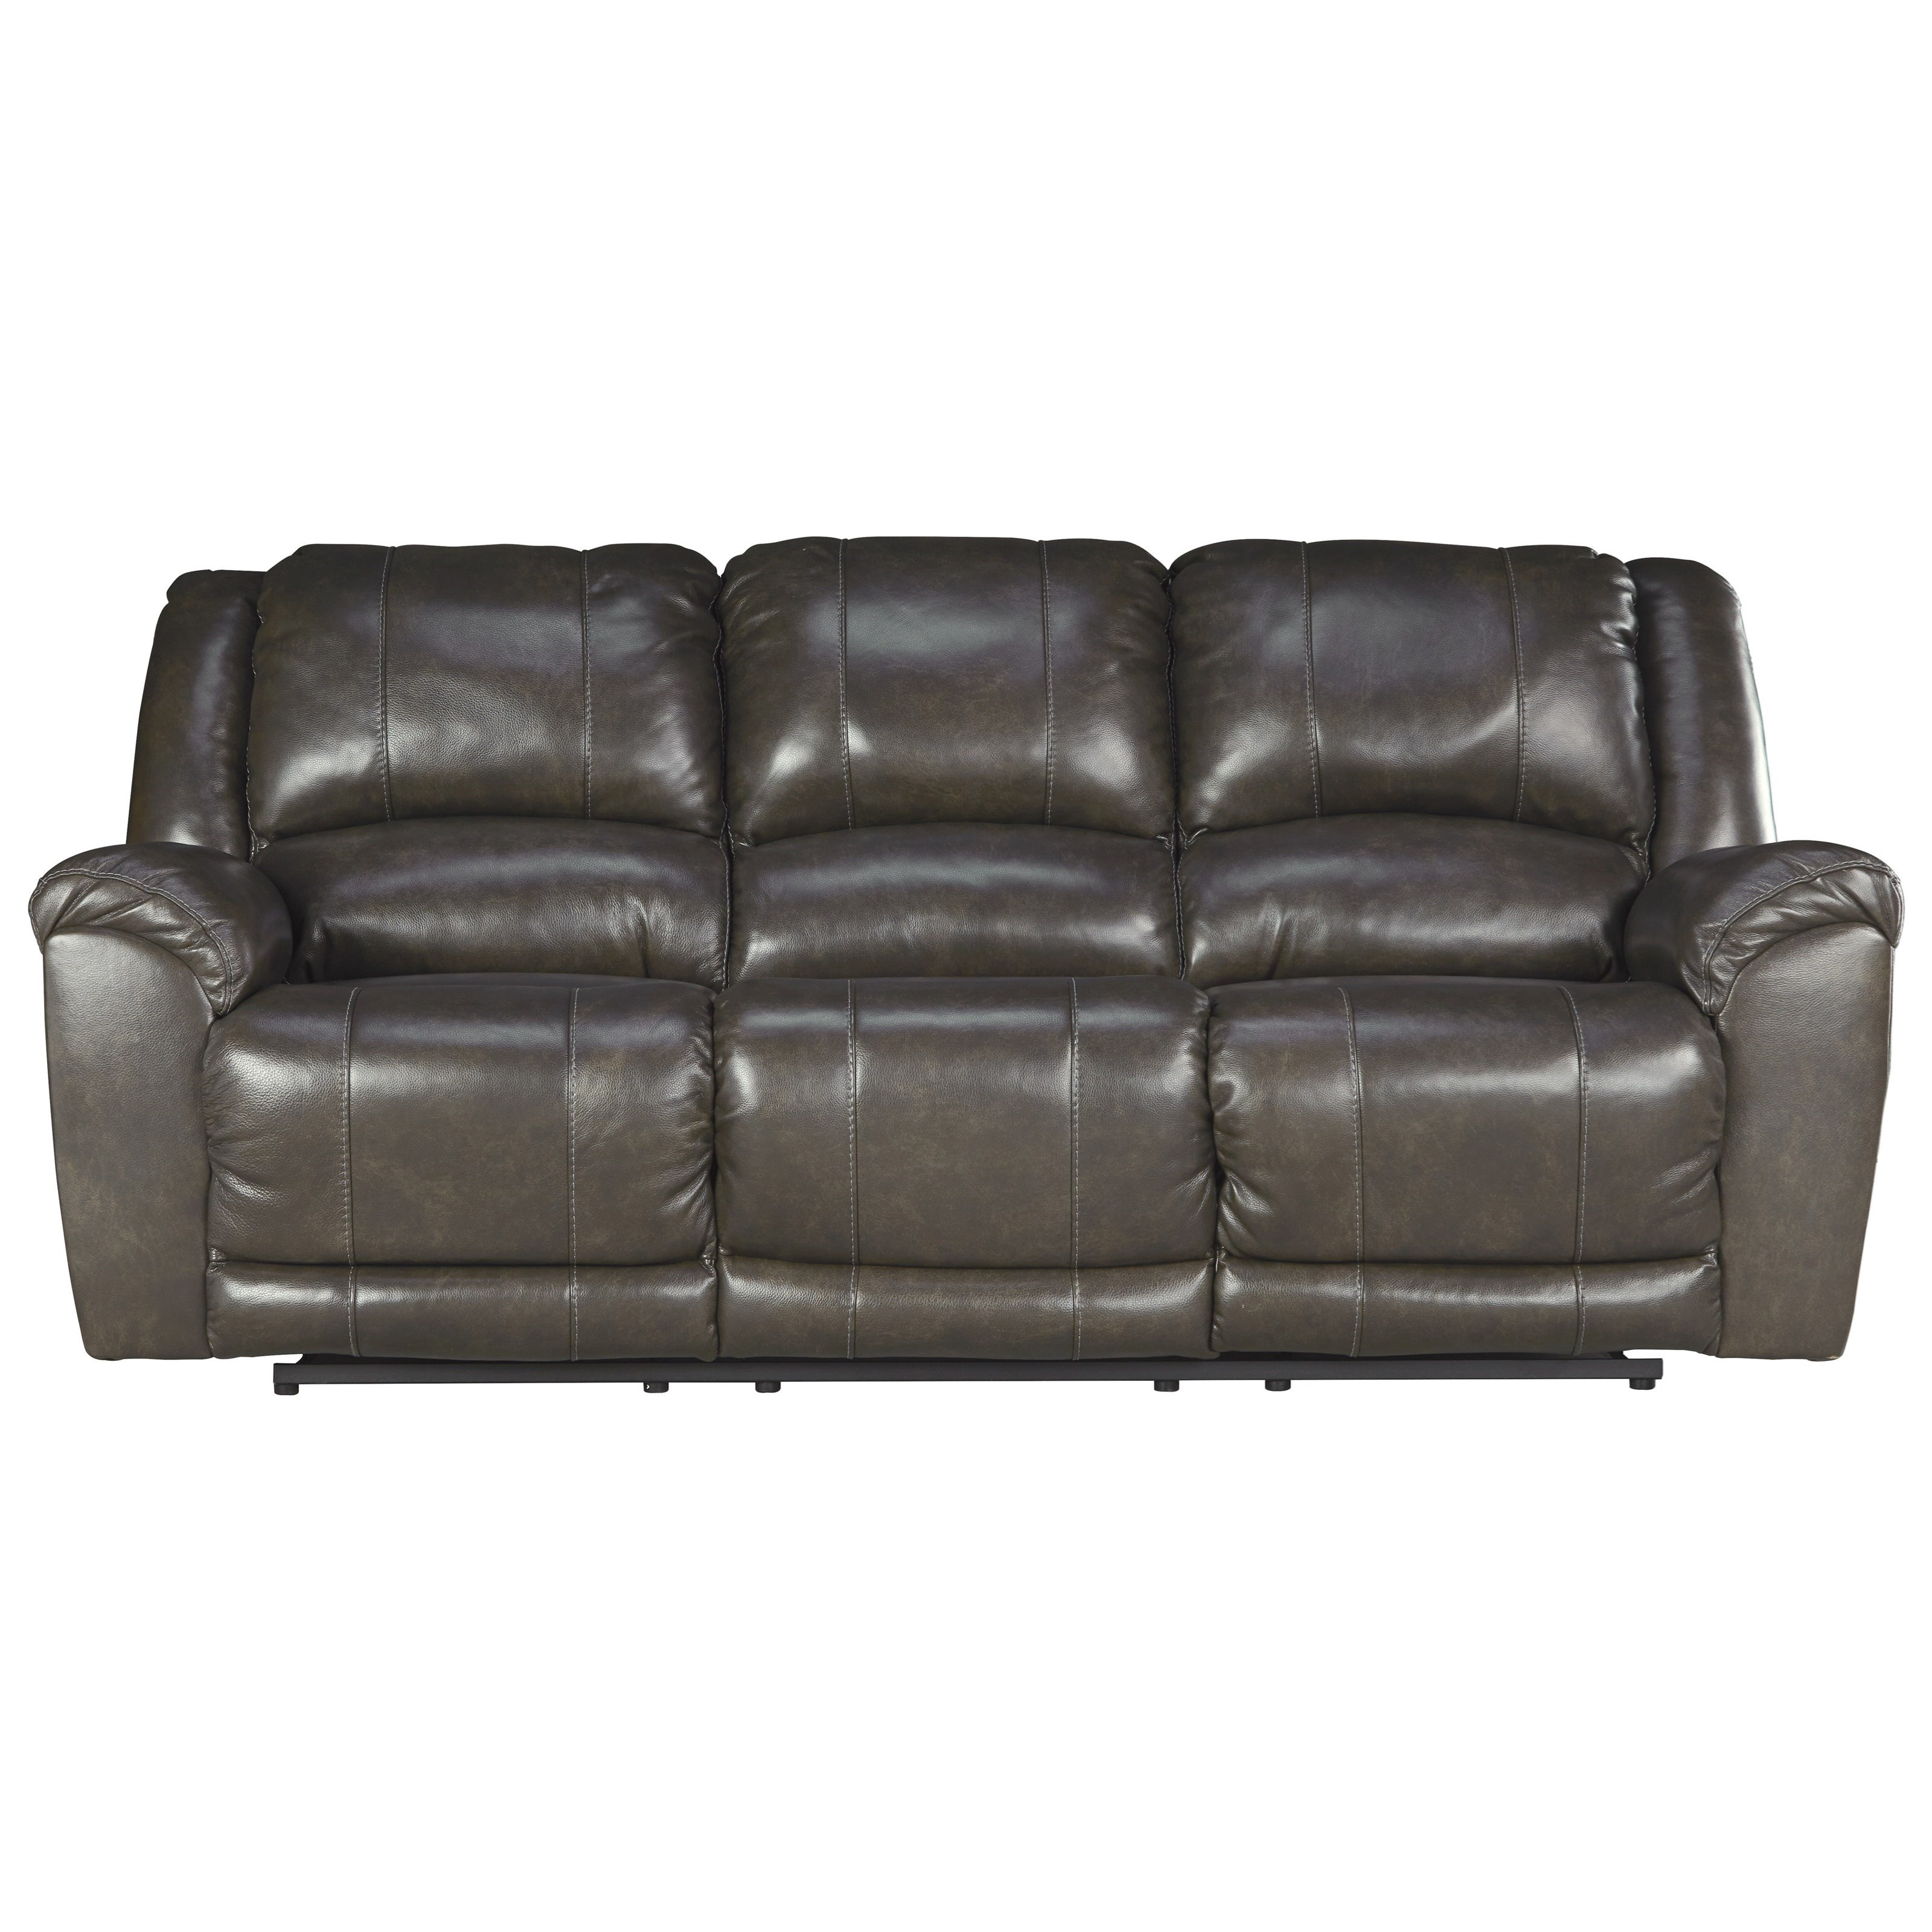 Signature Design by Ashley Yancy Reclining Sofa - Item Number: 2921388